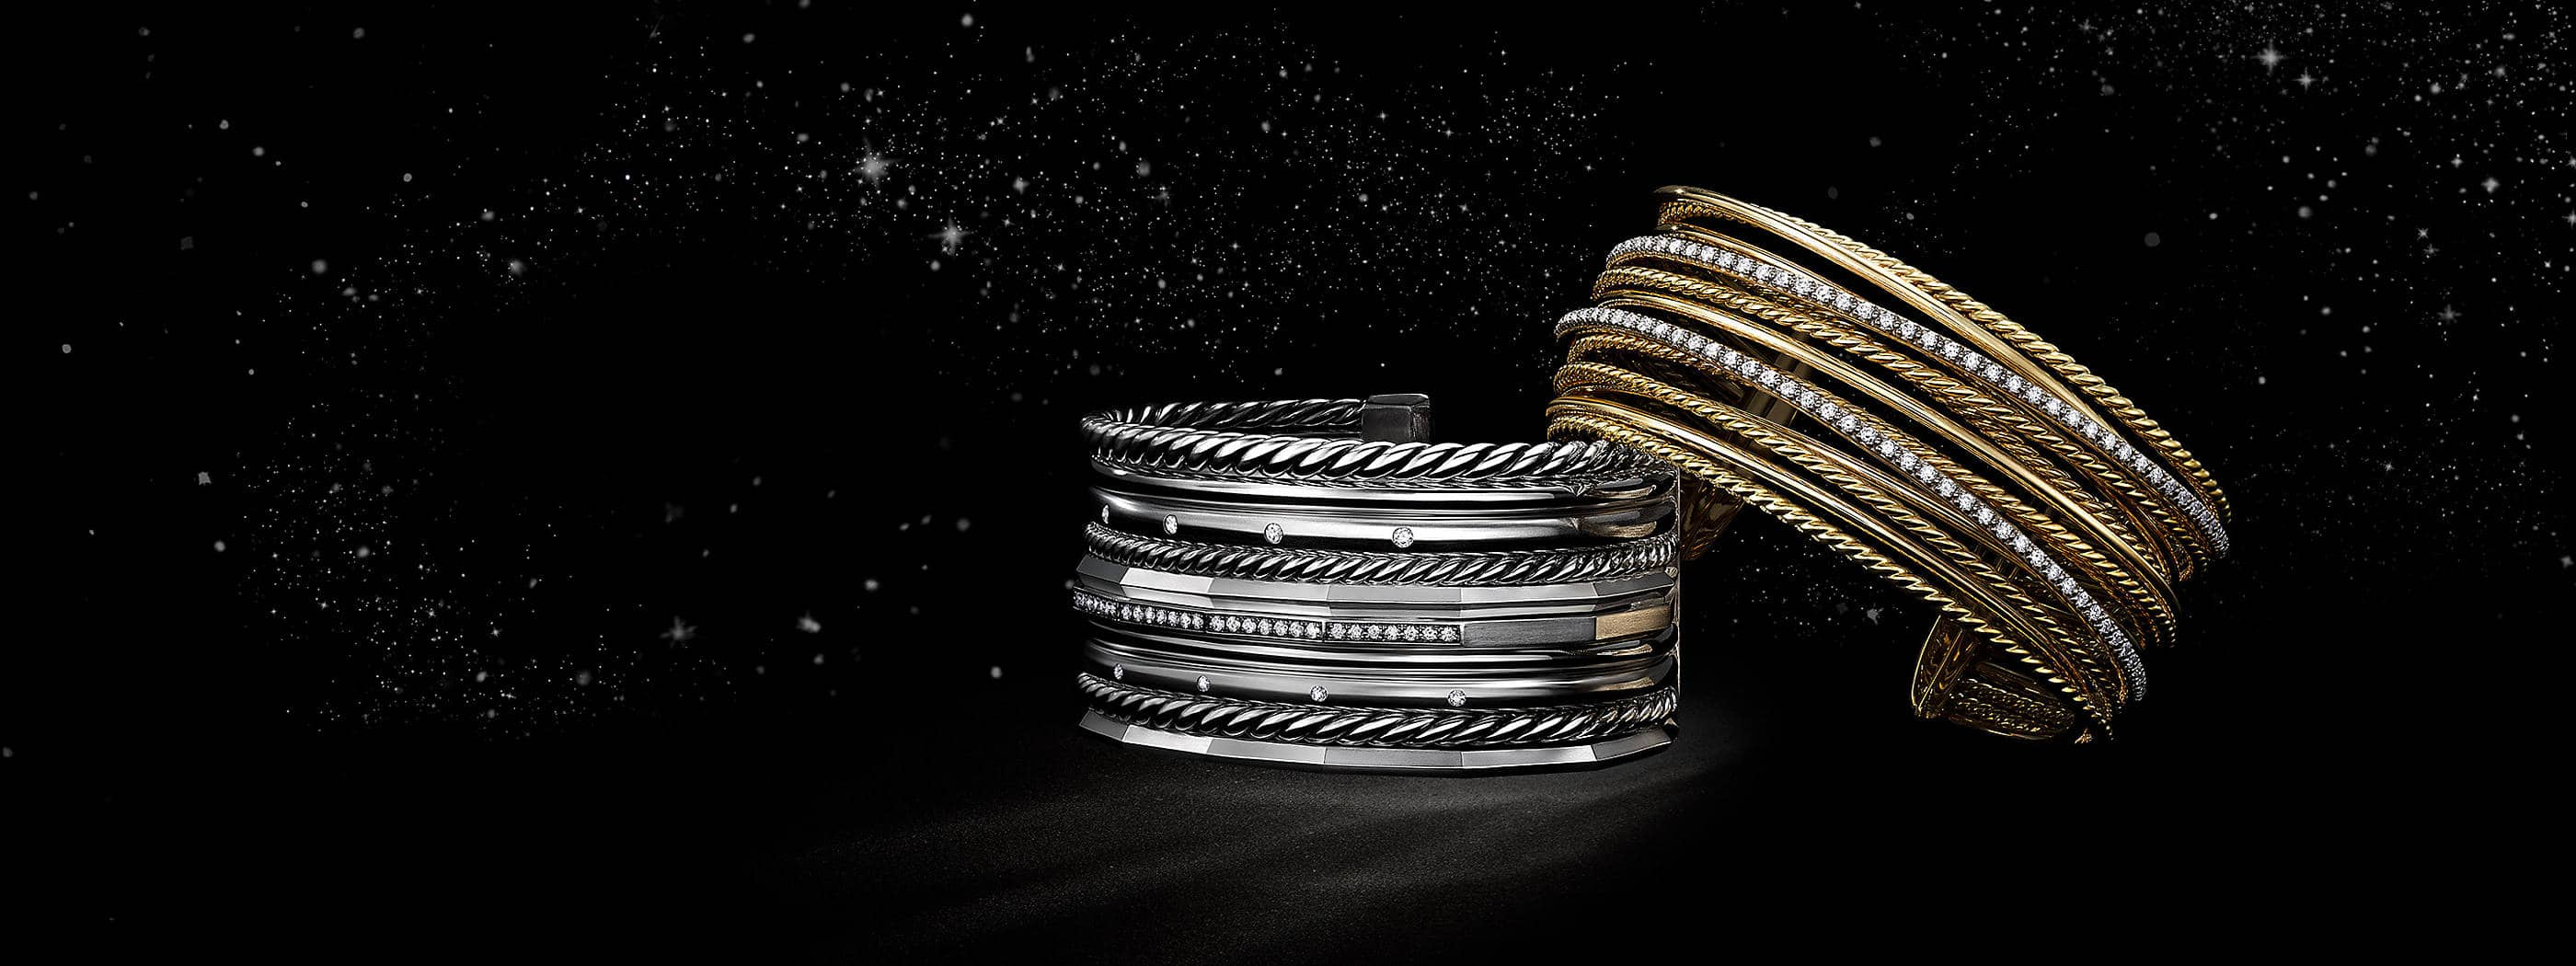 A color photograph shows two David Yurman women's cuff bracelets from the Stax and Crossover collections floating in front of a starry night sky. The bracelets are crafted from sterling silver Cable strands with pavé diamonds.